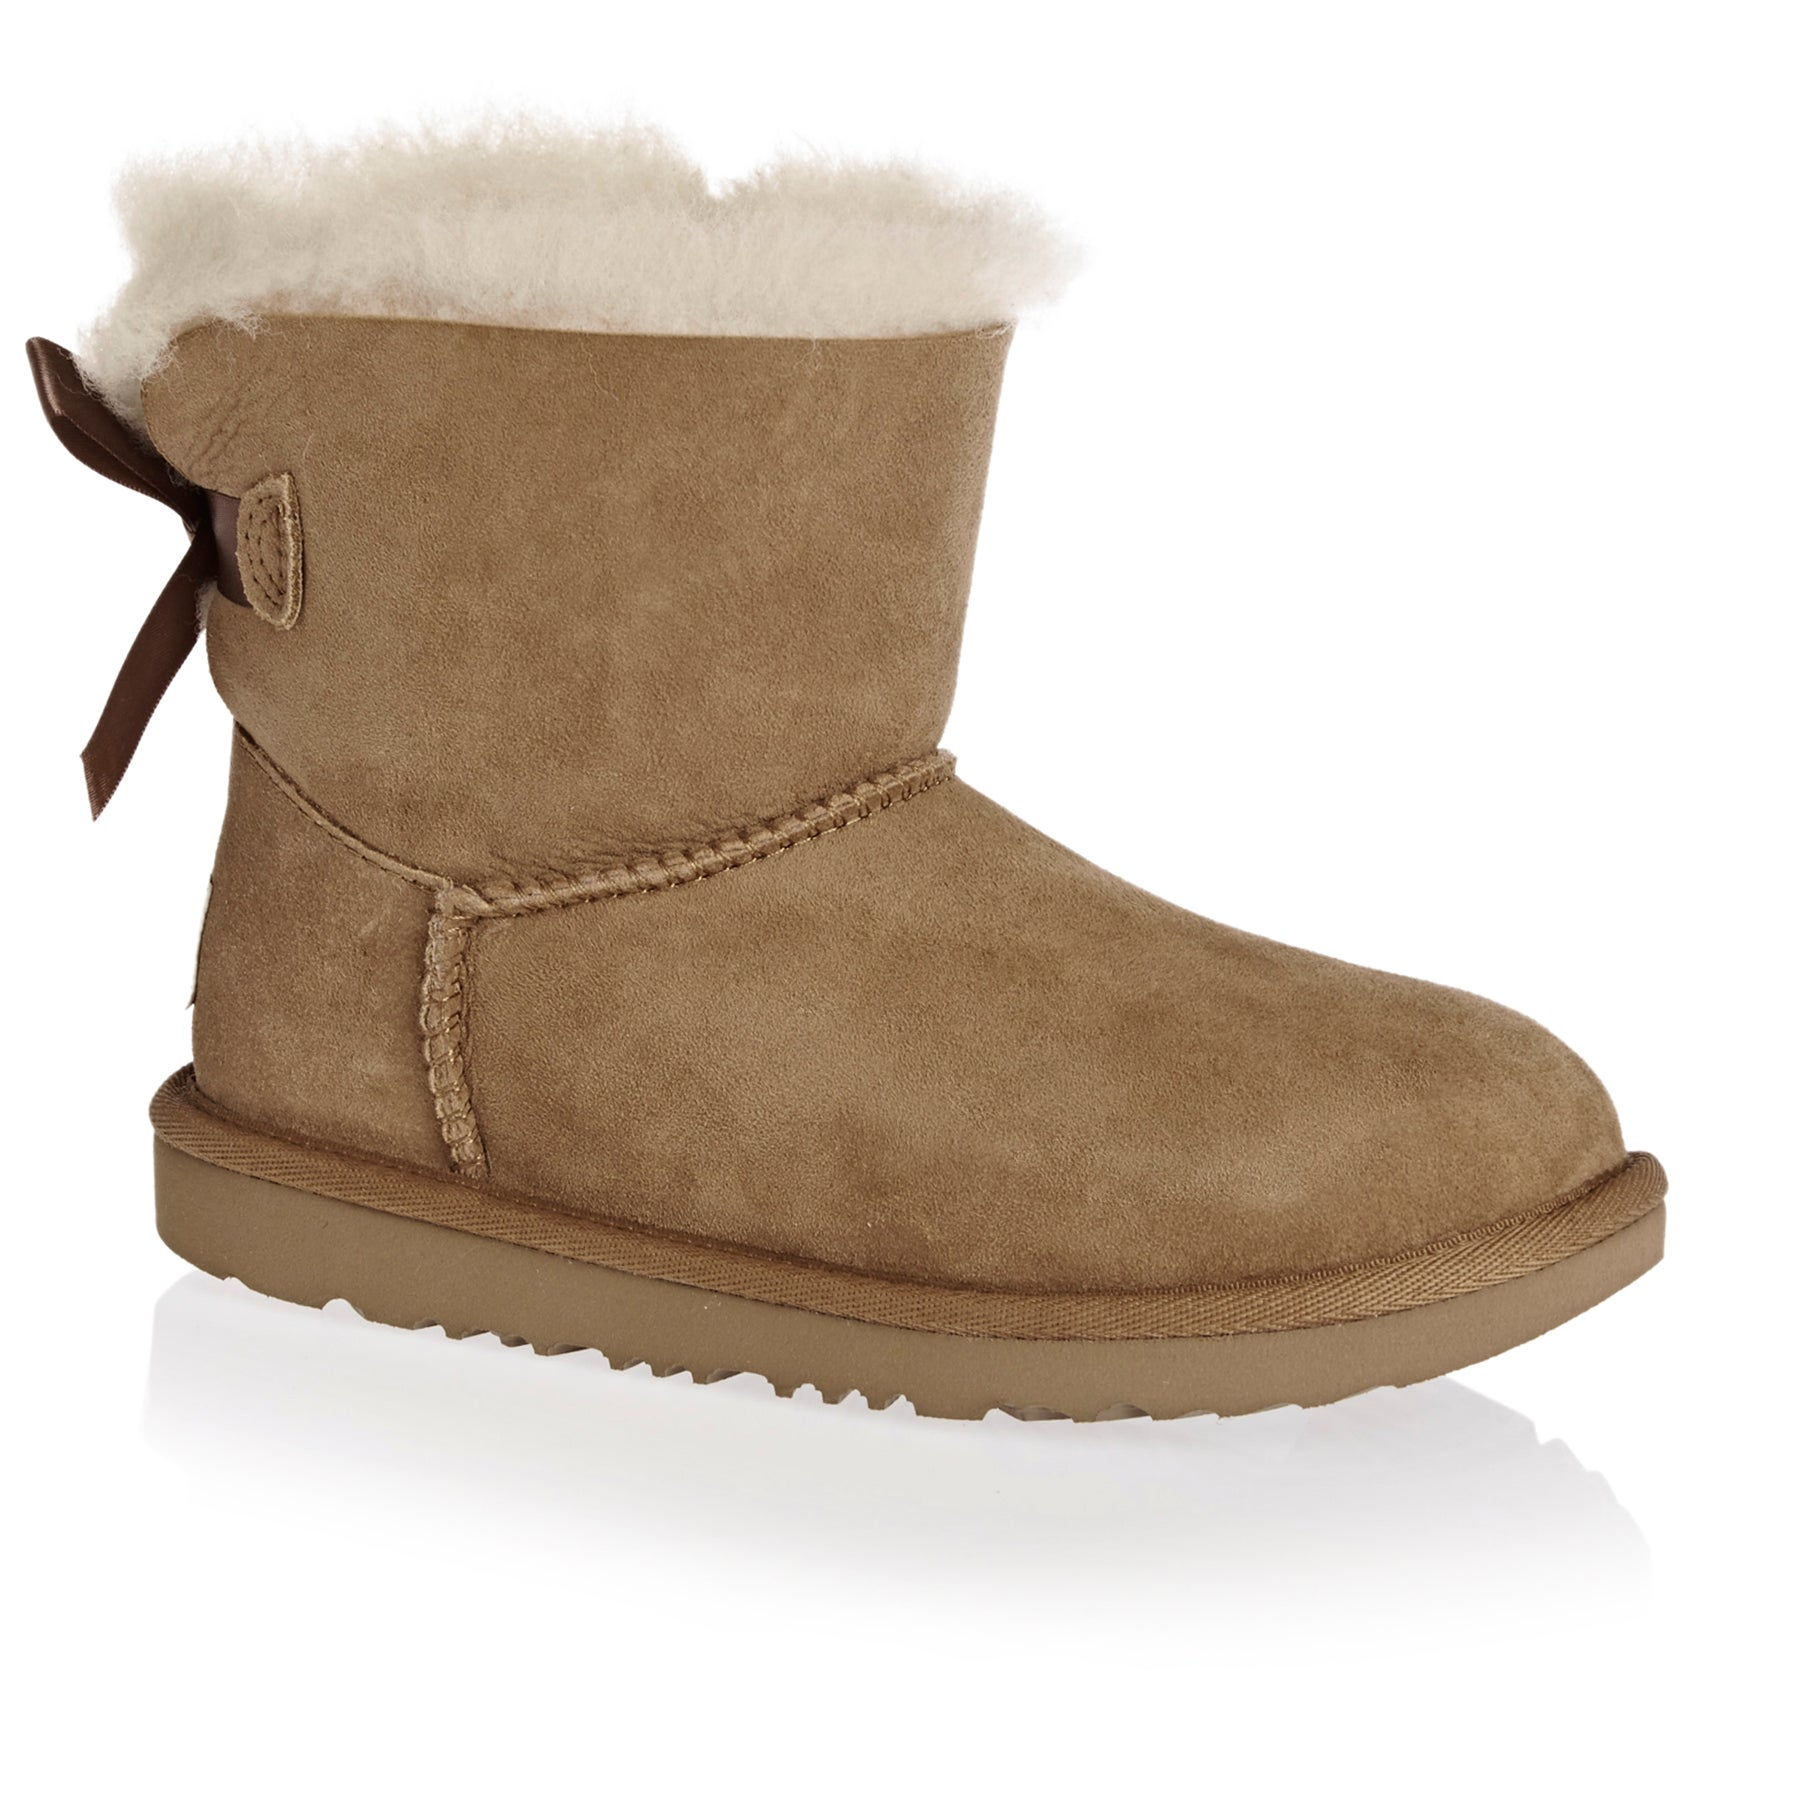 fc406a73120 UGG Kids Mini Bailey Bow II Girls Boots | Free Delivery Options